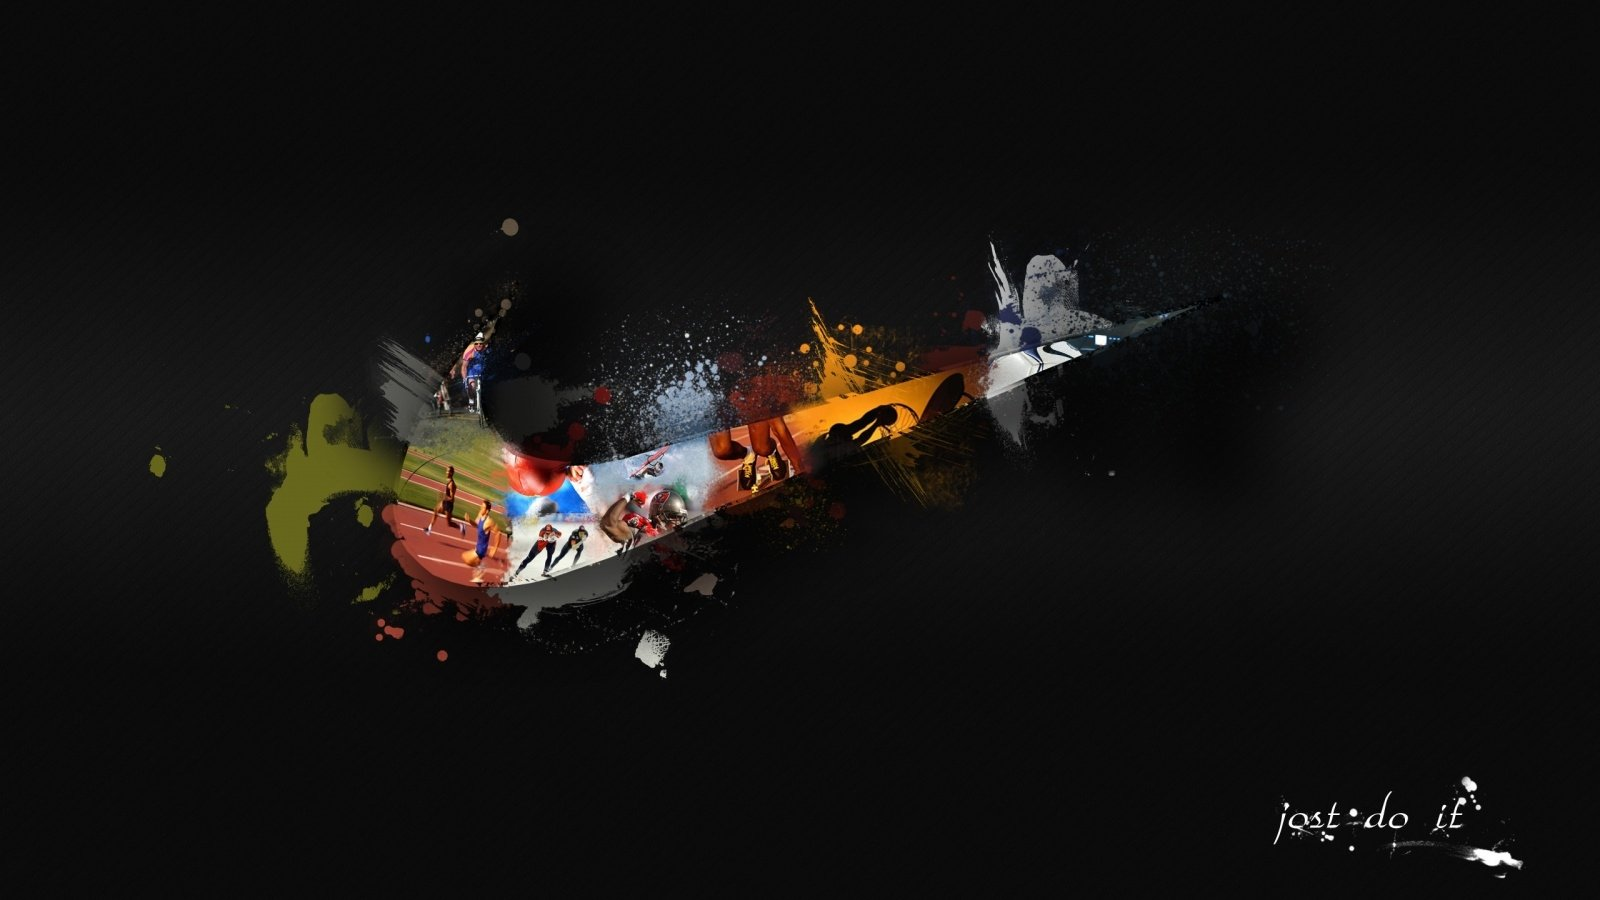 Hd wallpaper nike - Hd Wallpaper Background Id 333424 1600x900 Products Nike